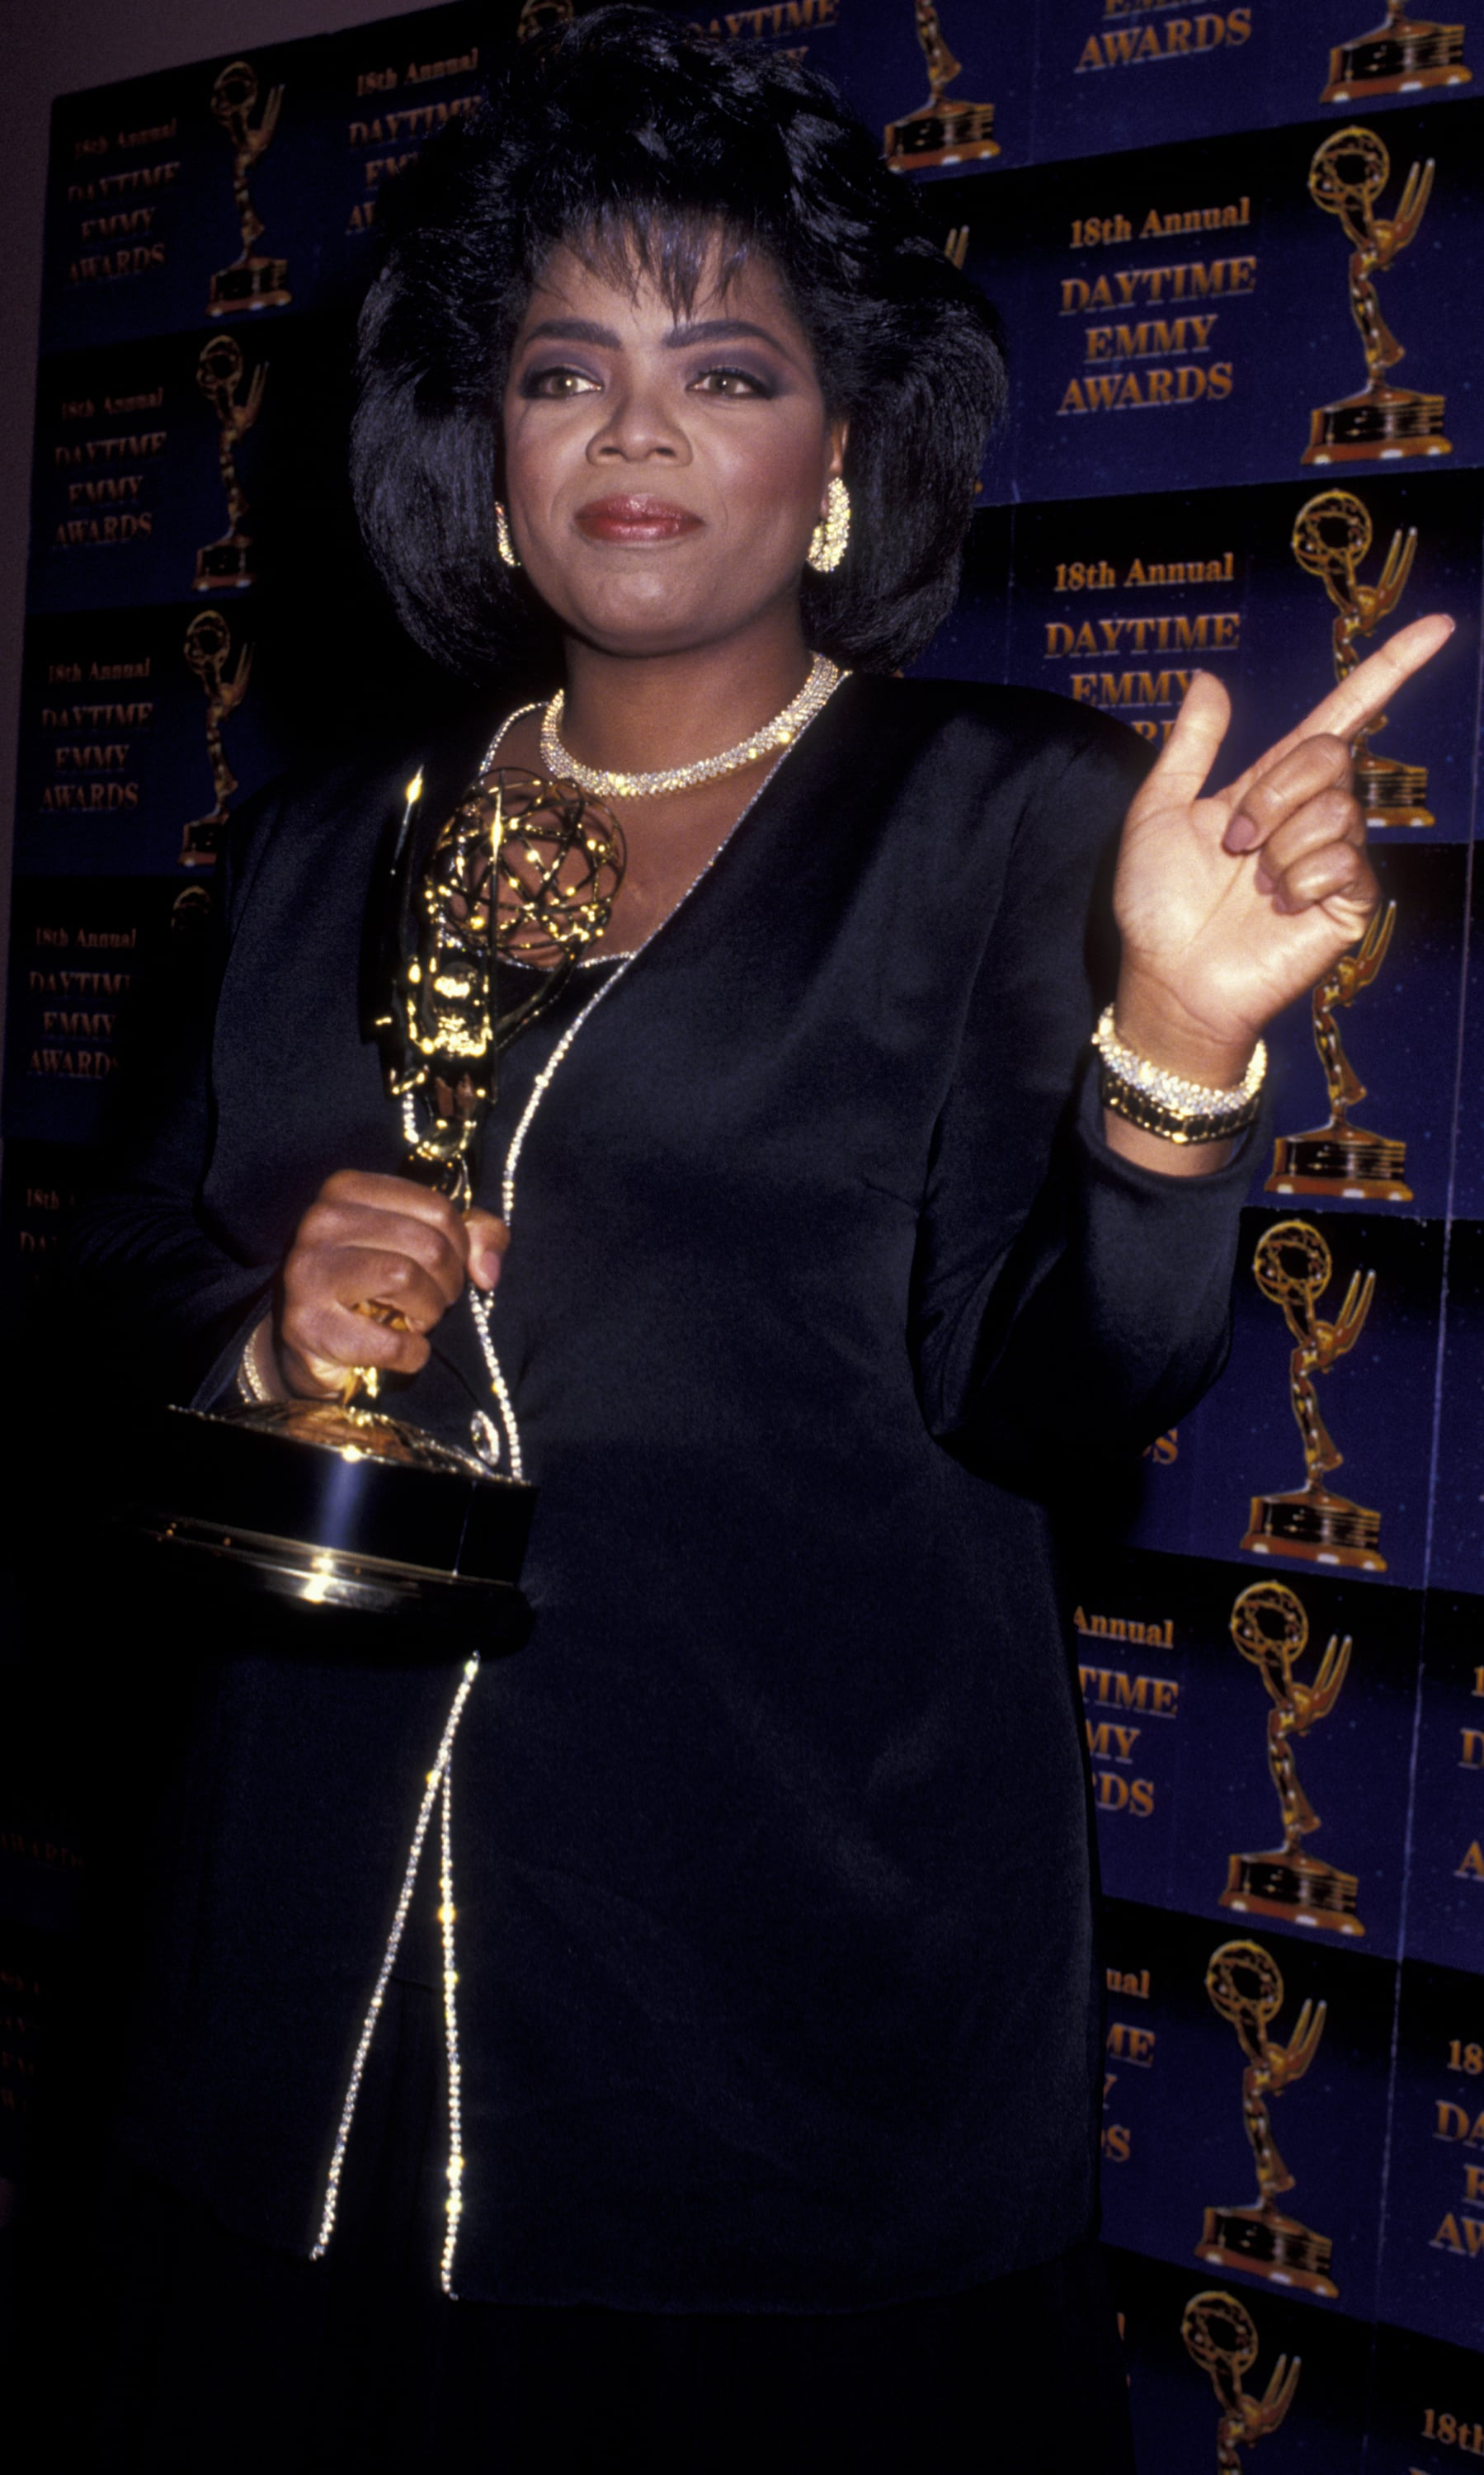 Oprah pointed it up with her 1991 Daytime Emmy.